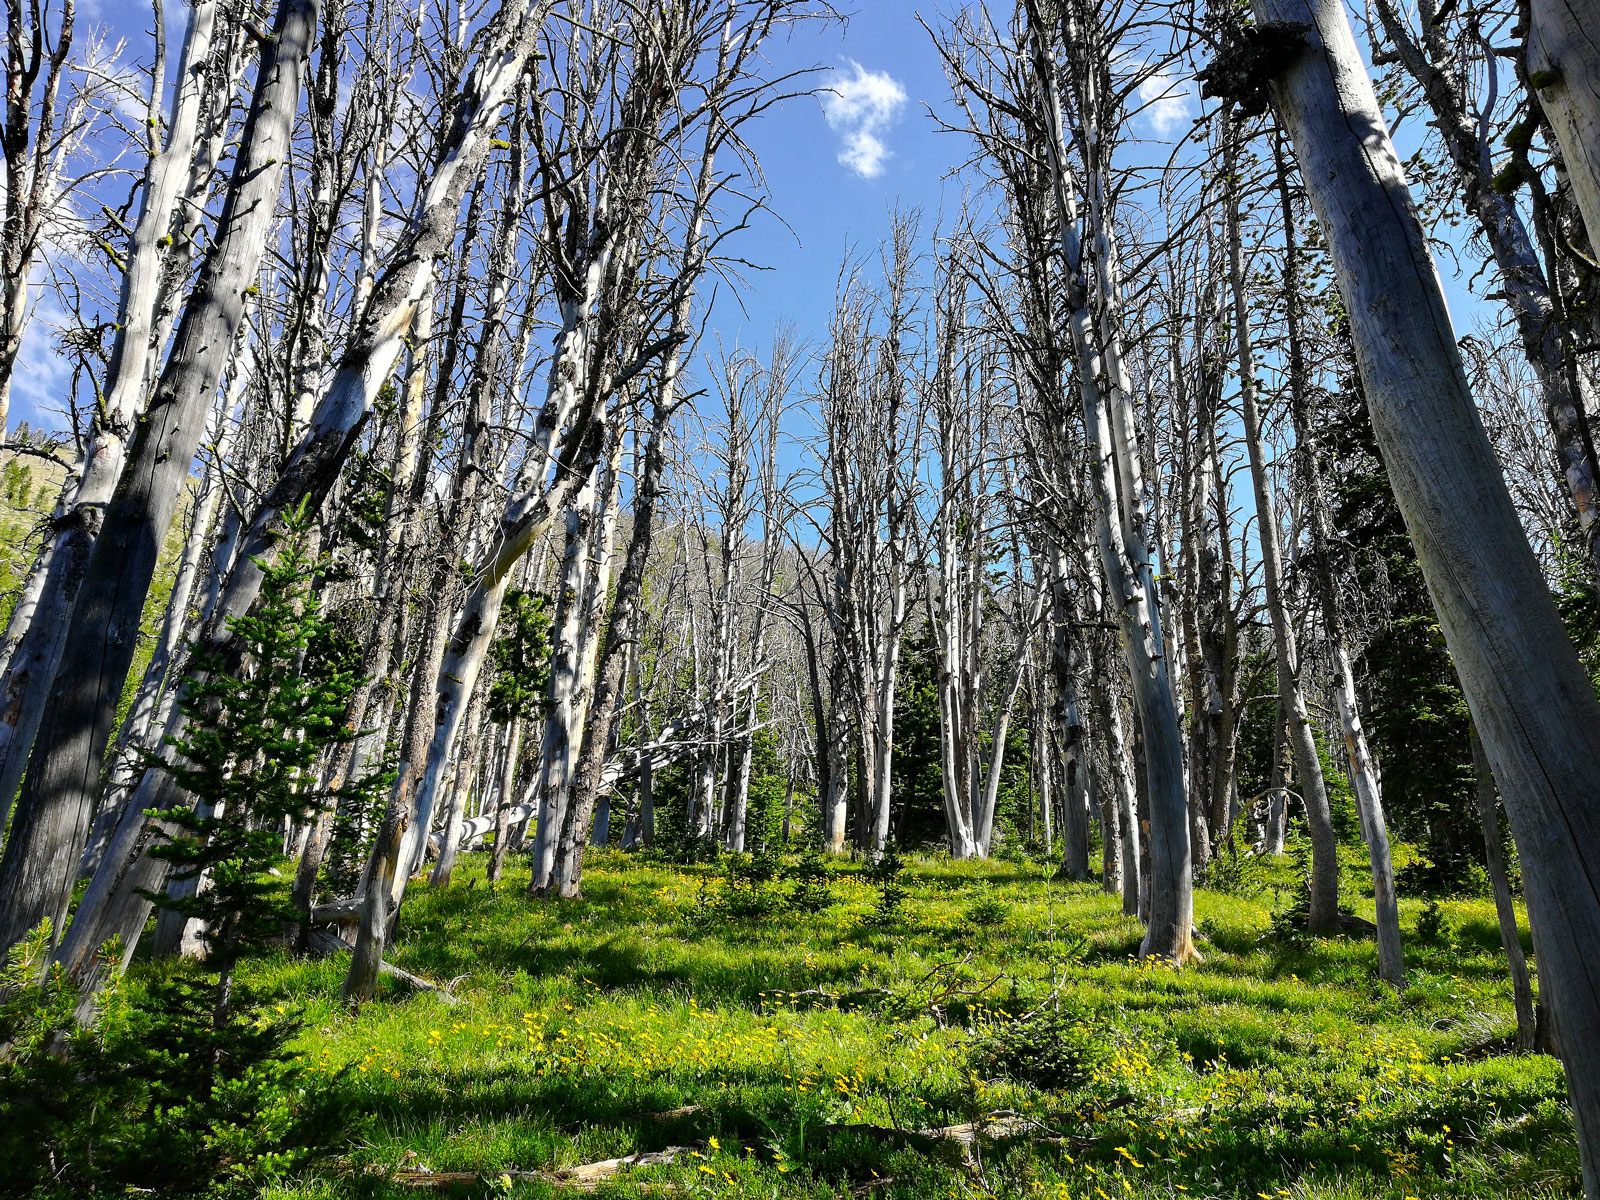 Alpine basin in the trail leading to Avalanche Peak in Yellowstone National Park